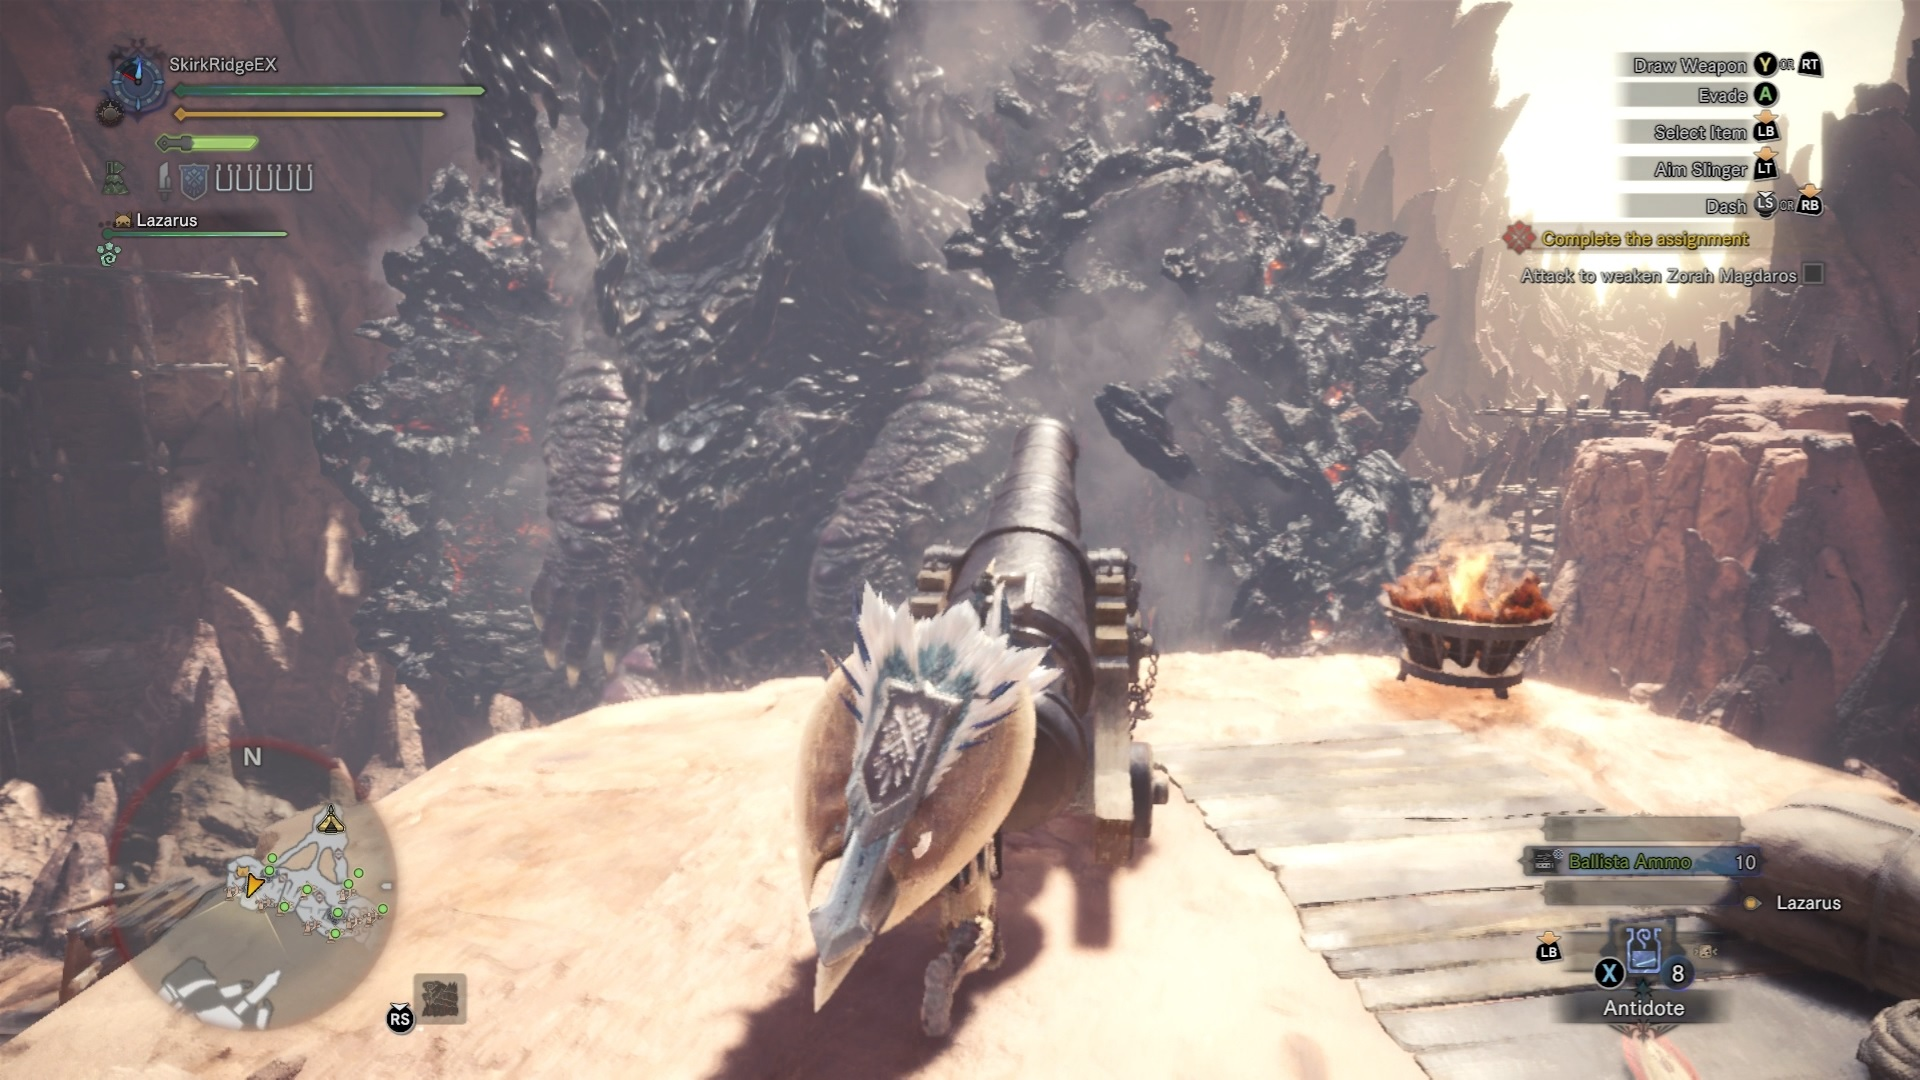 Player is firing the cannon on Zorah Magdaros